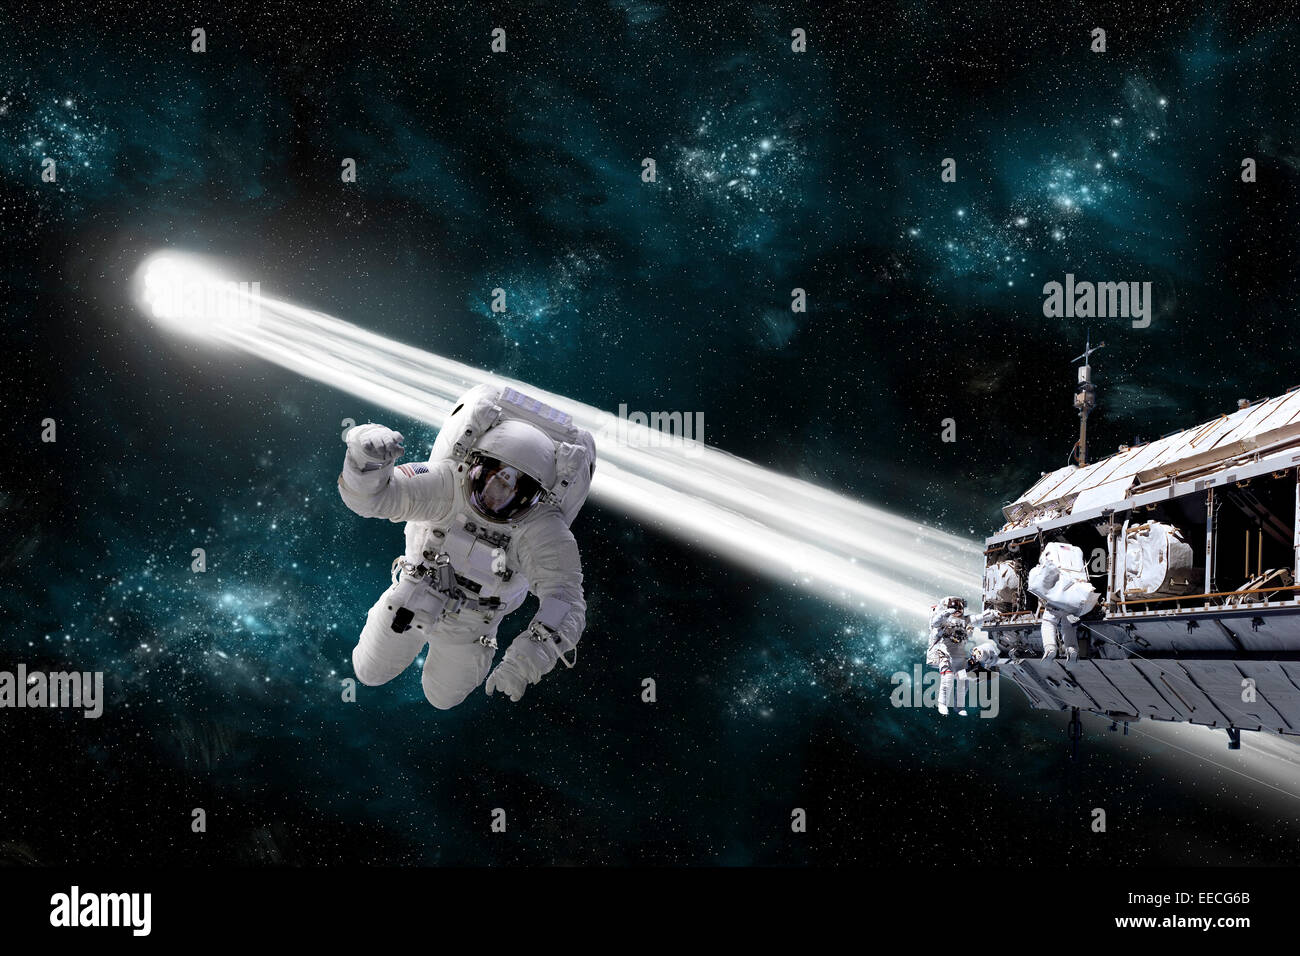 an astronaut floating in space - photo #29